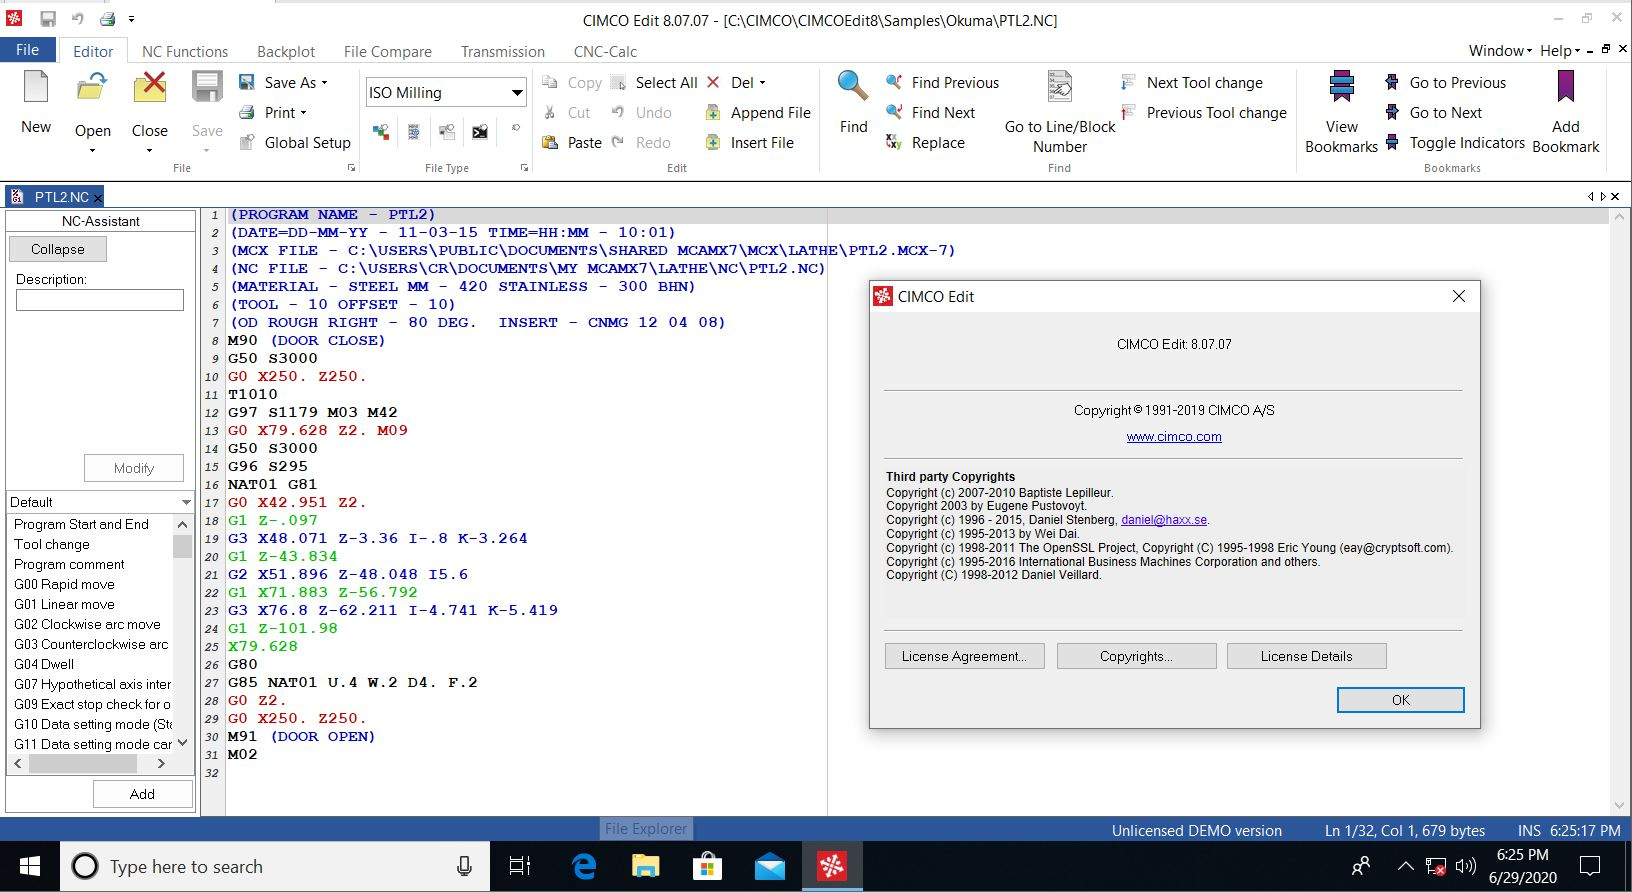 Working with CIMCO Software 8.07.07 full license